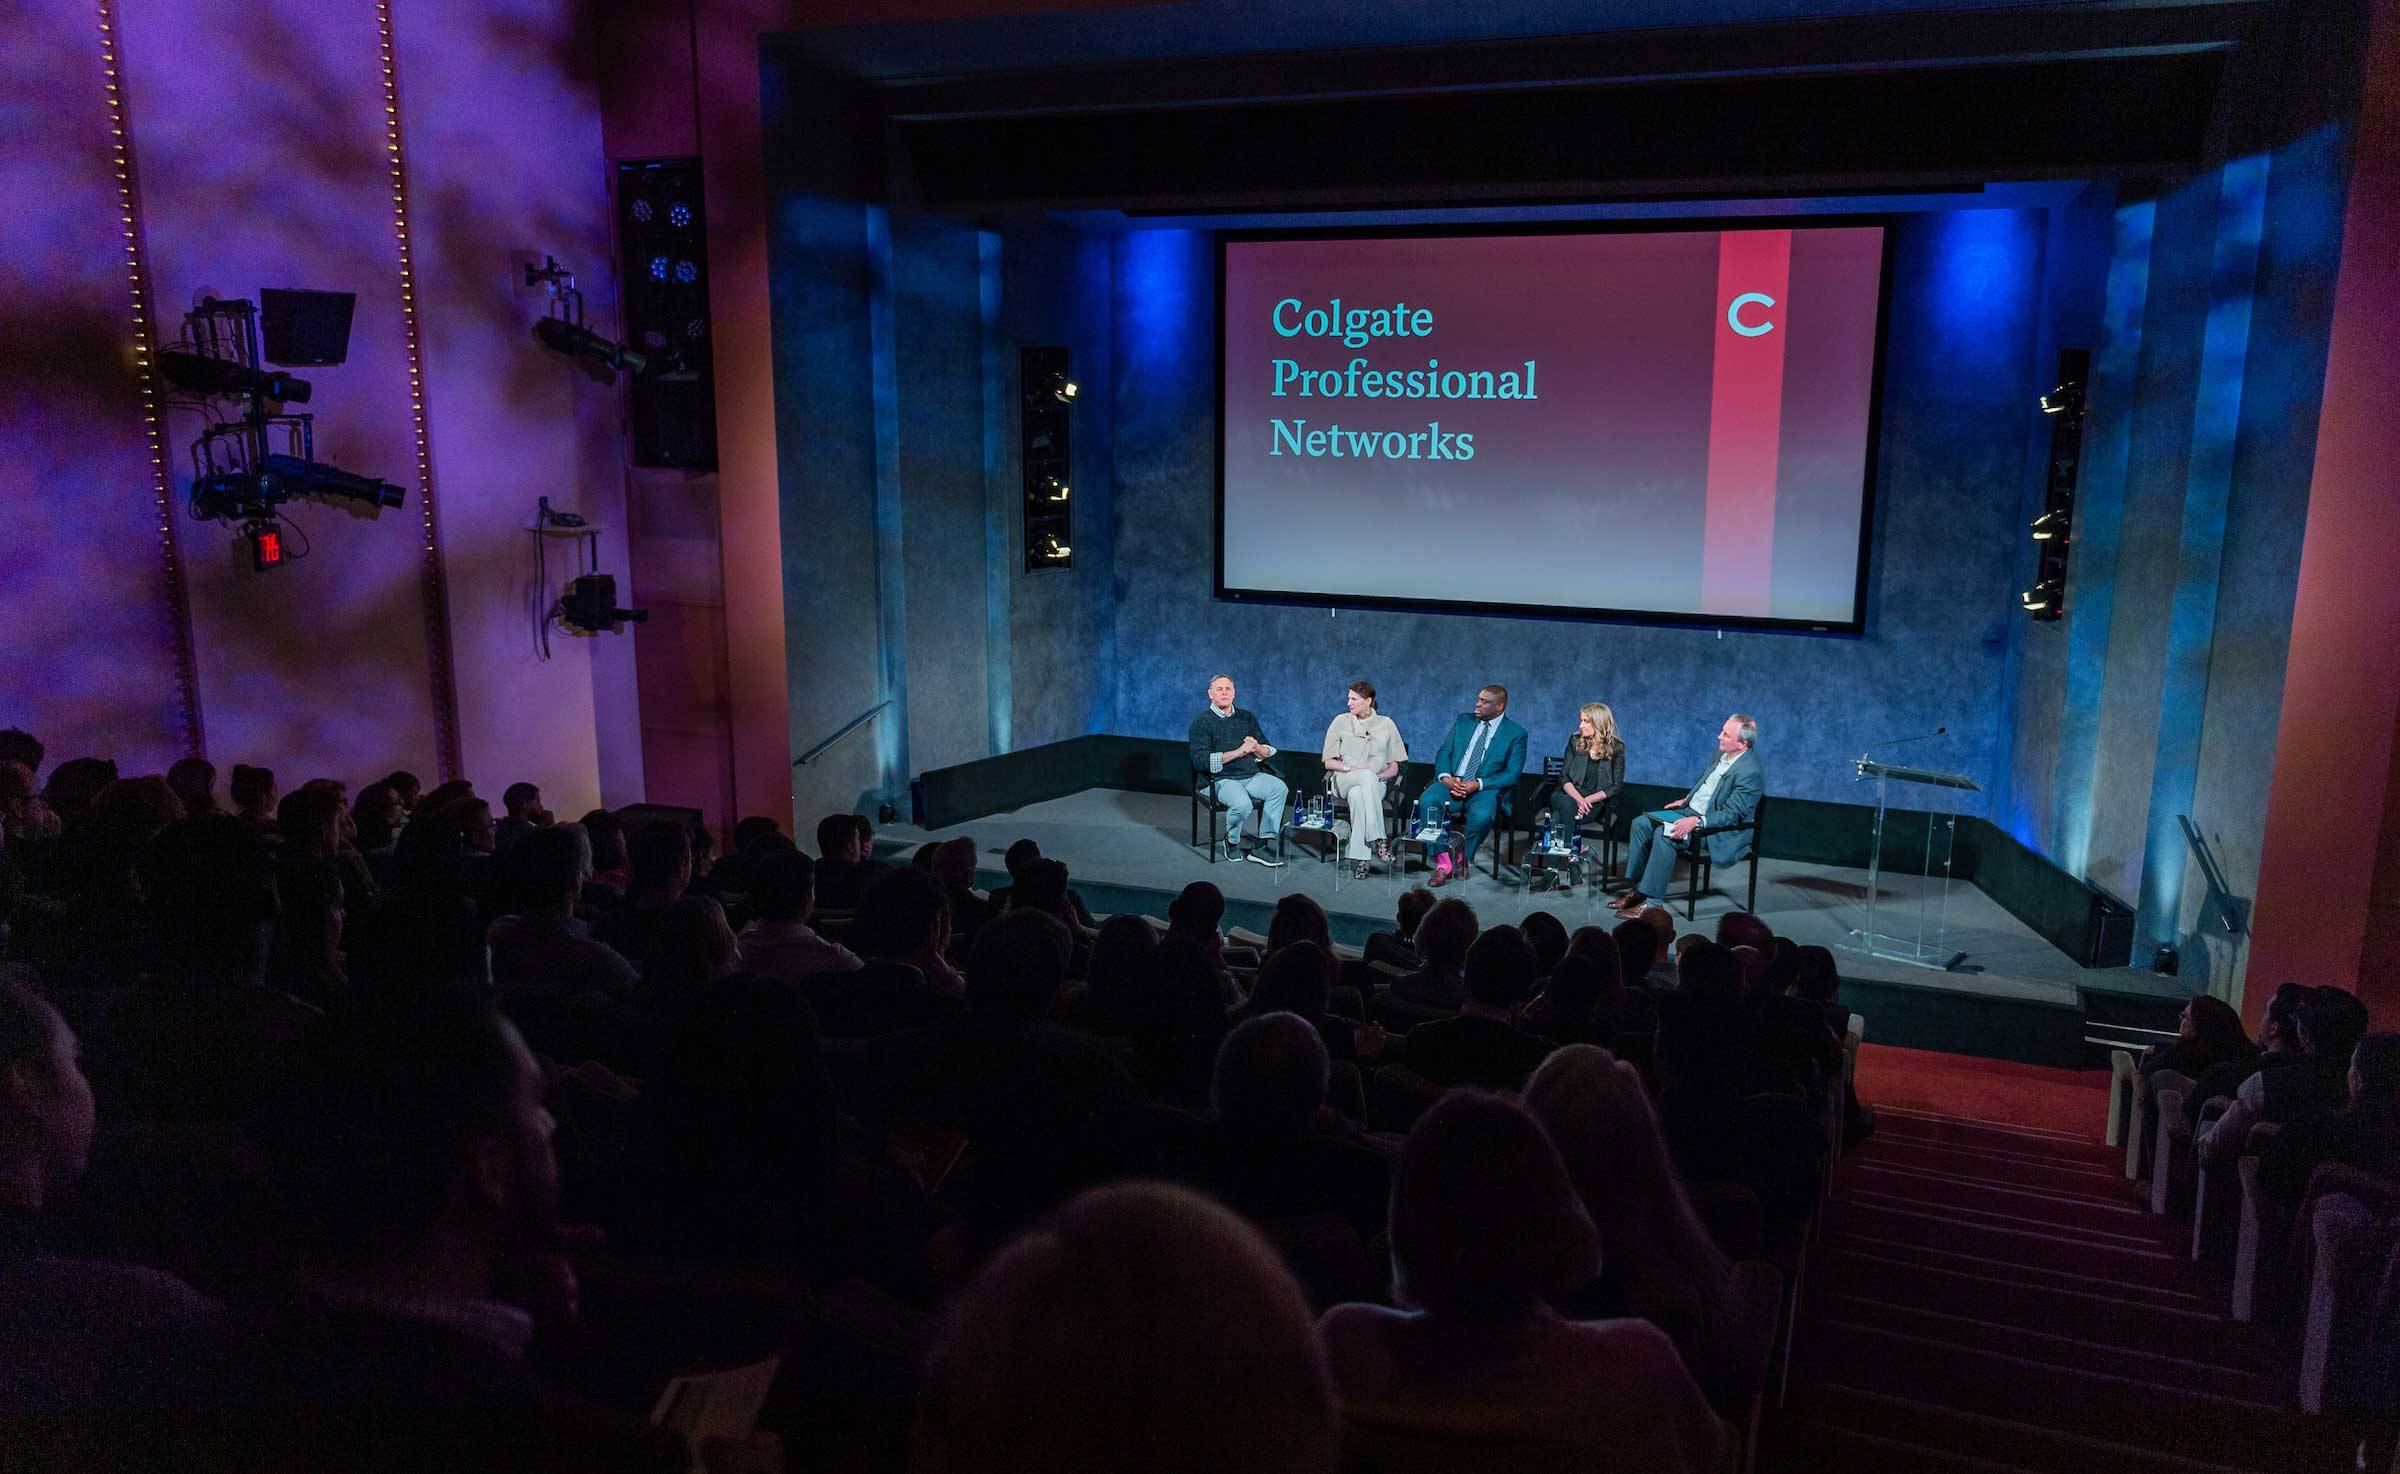 A panel talk during the recent Colgate Professional Networks Innovation and Creativity event in New York City